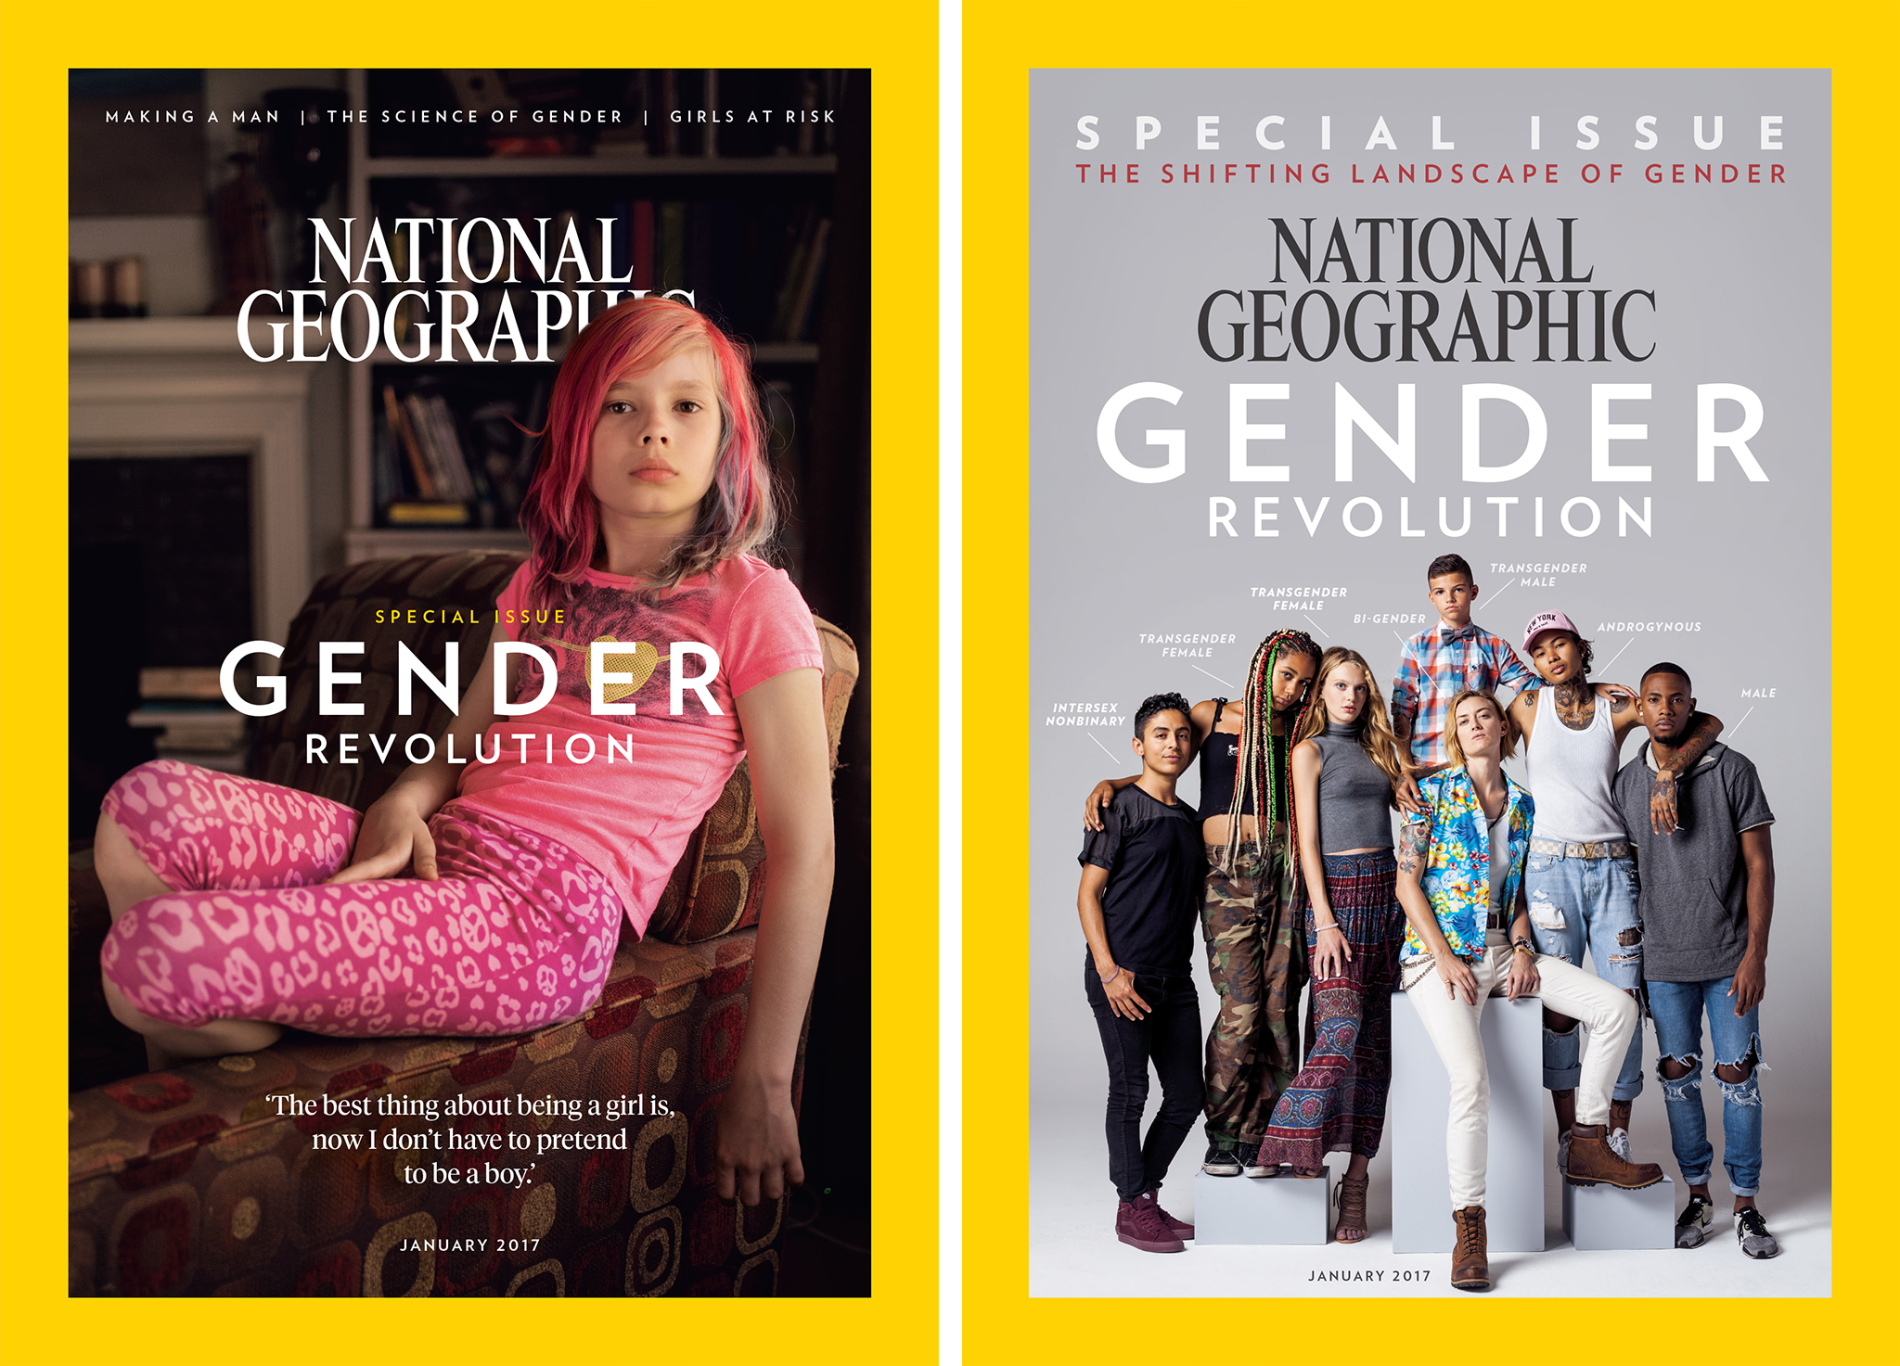 January 2017 Gender Revolution issue. Would NatGeo have told this story 20 years ago?